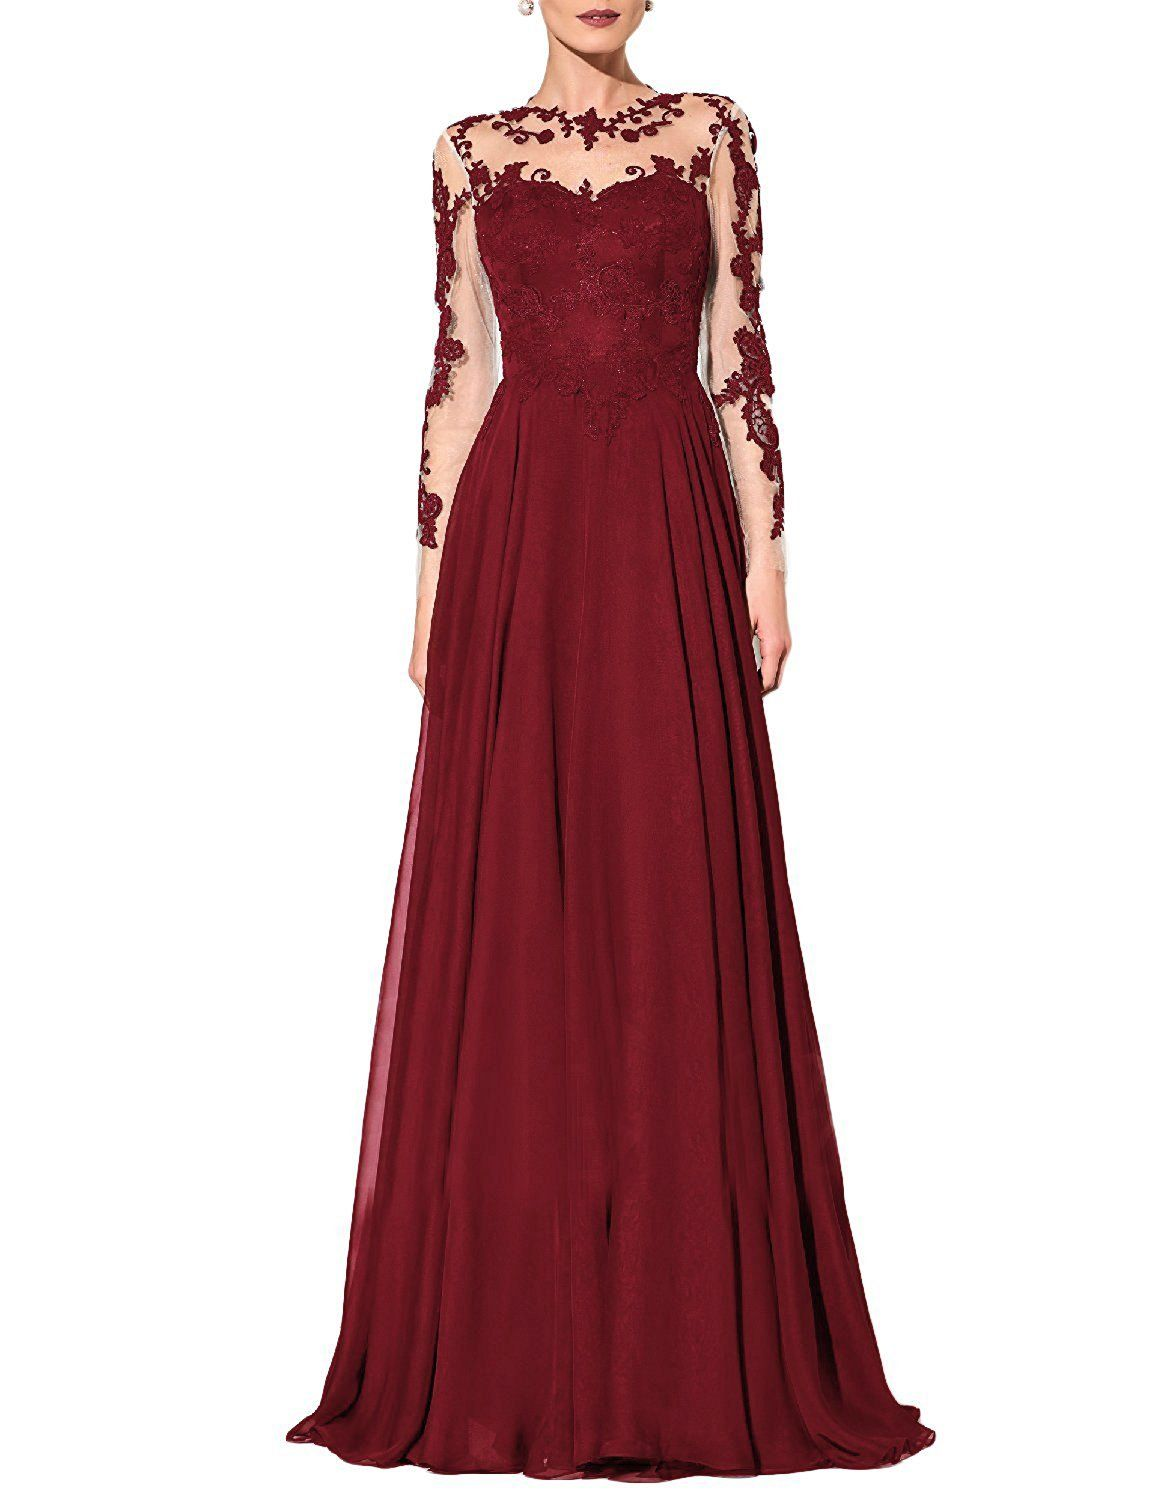 Onlinedress womenus chiffon prom dresses evening party gowns with